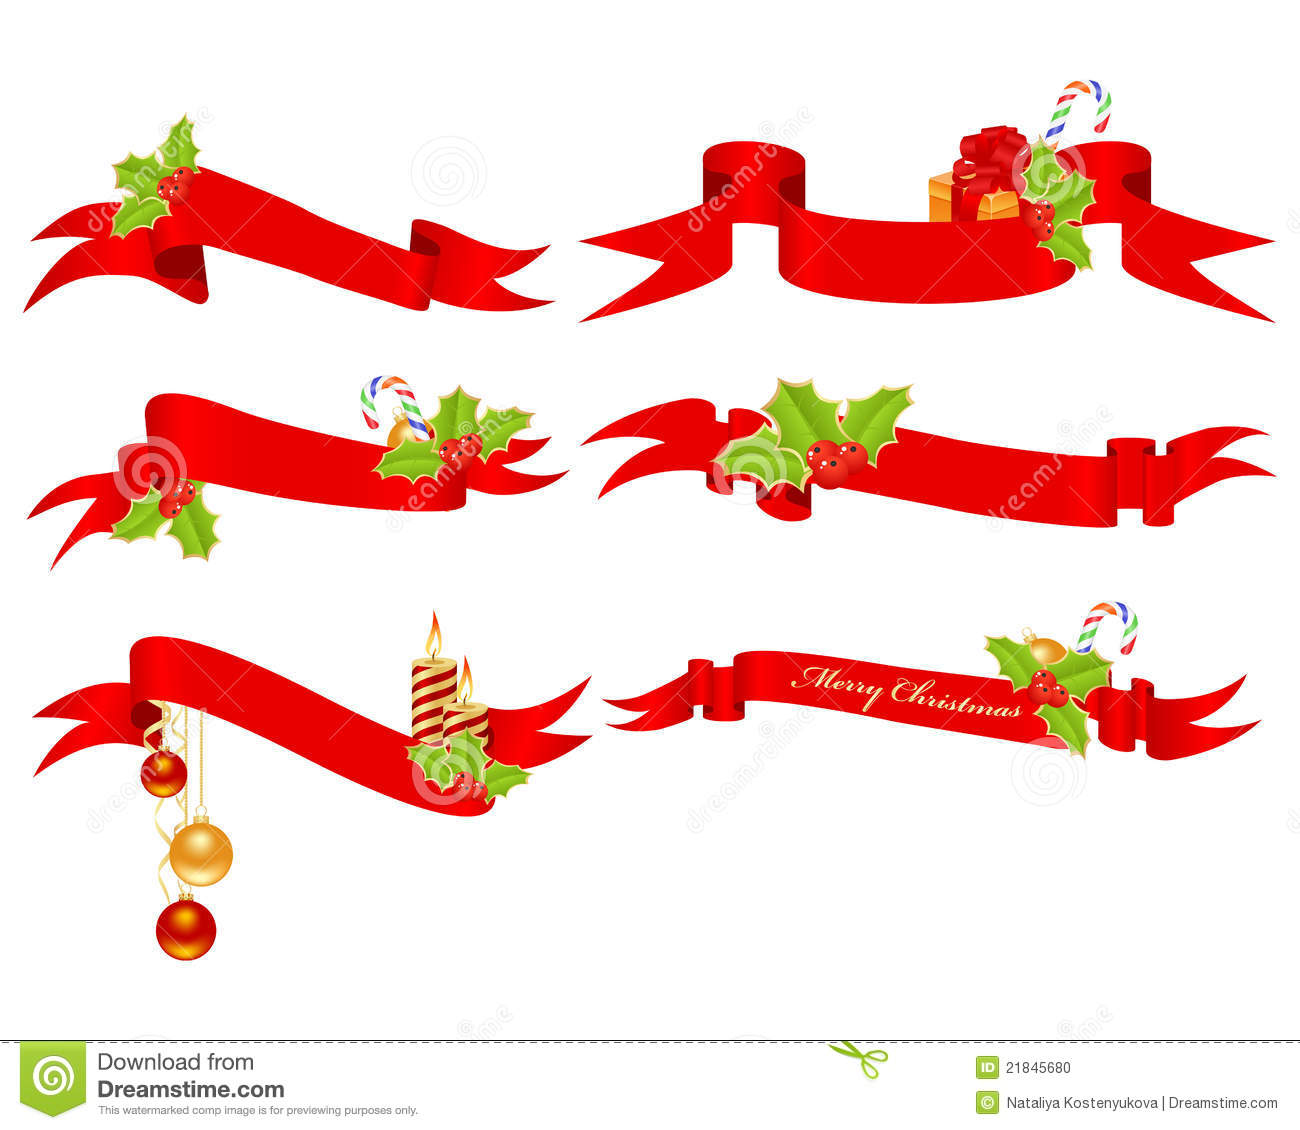 Christmas Banners Stock Photo - Image: 21845680